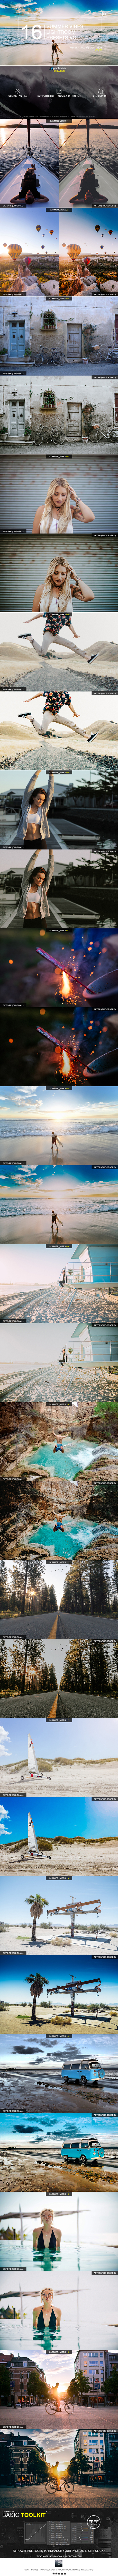 16 Summer Vibes Lightroom Presets + VSCO - Landscape Lightroom Presets